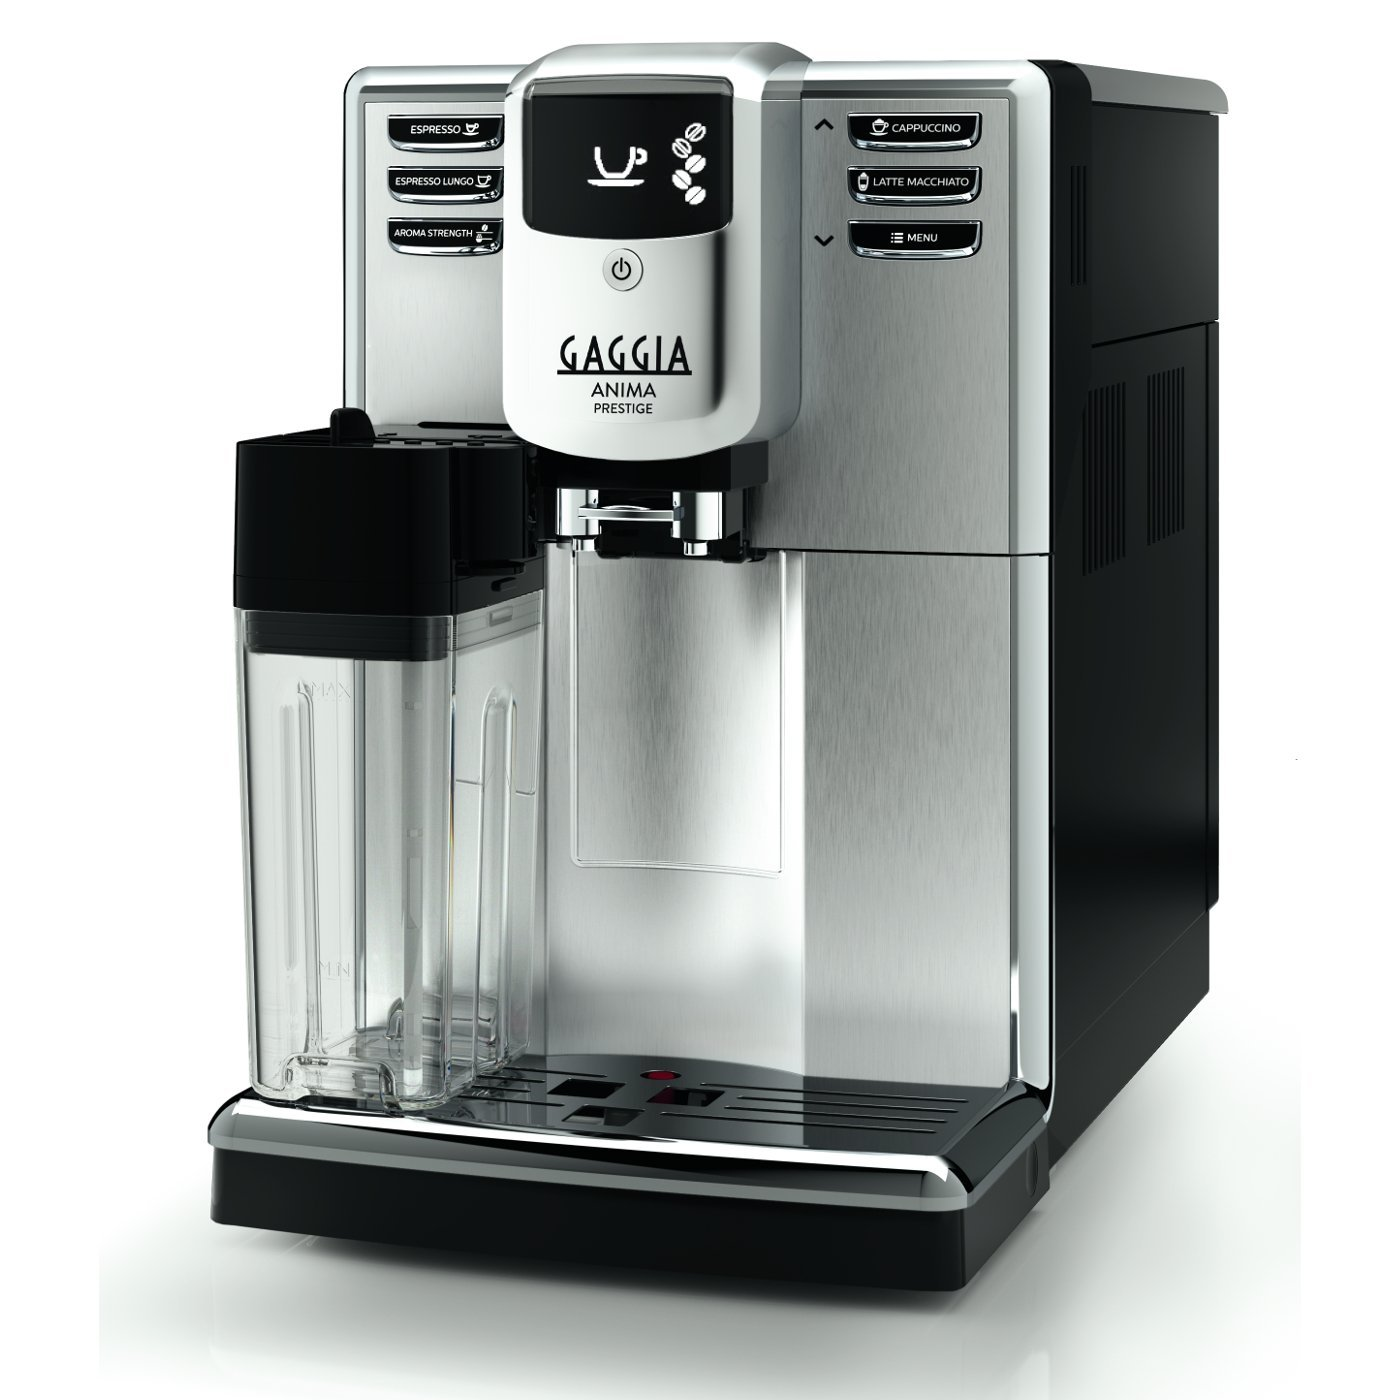 Prestige Espresso Coffee Maker User Manual : Gaggia RI8762 Anima Prestige Espresso Machine Review - Coffee Drinker